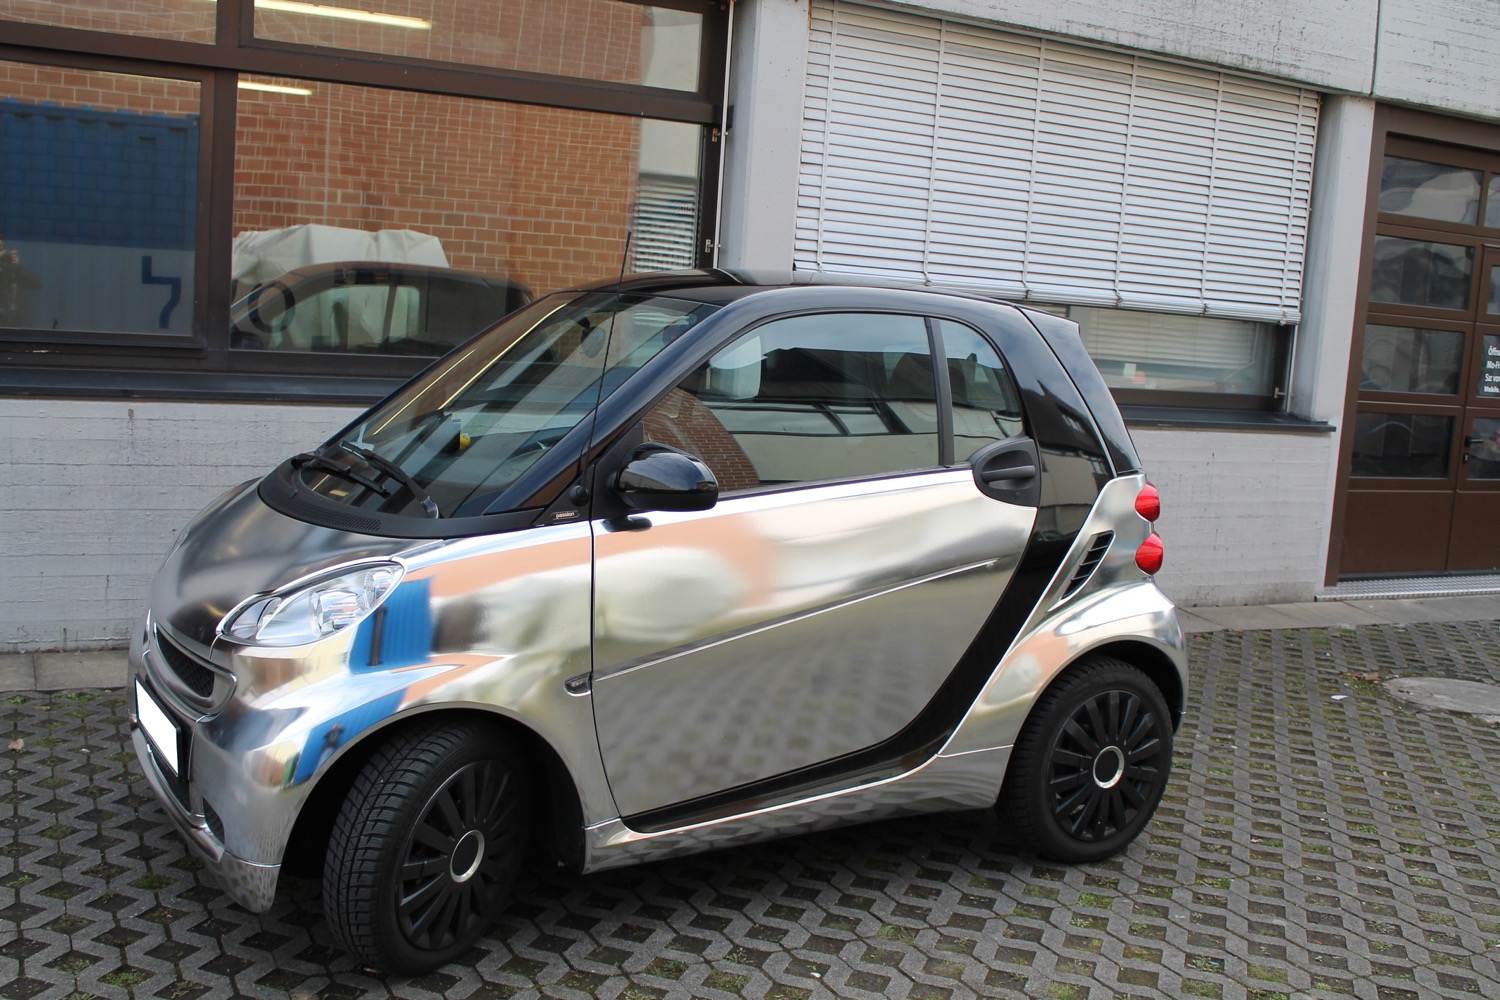 2015-04-04-car-wrapping-smart-12.jpg